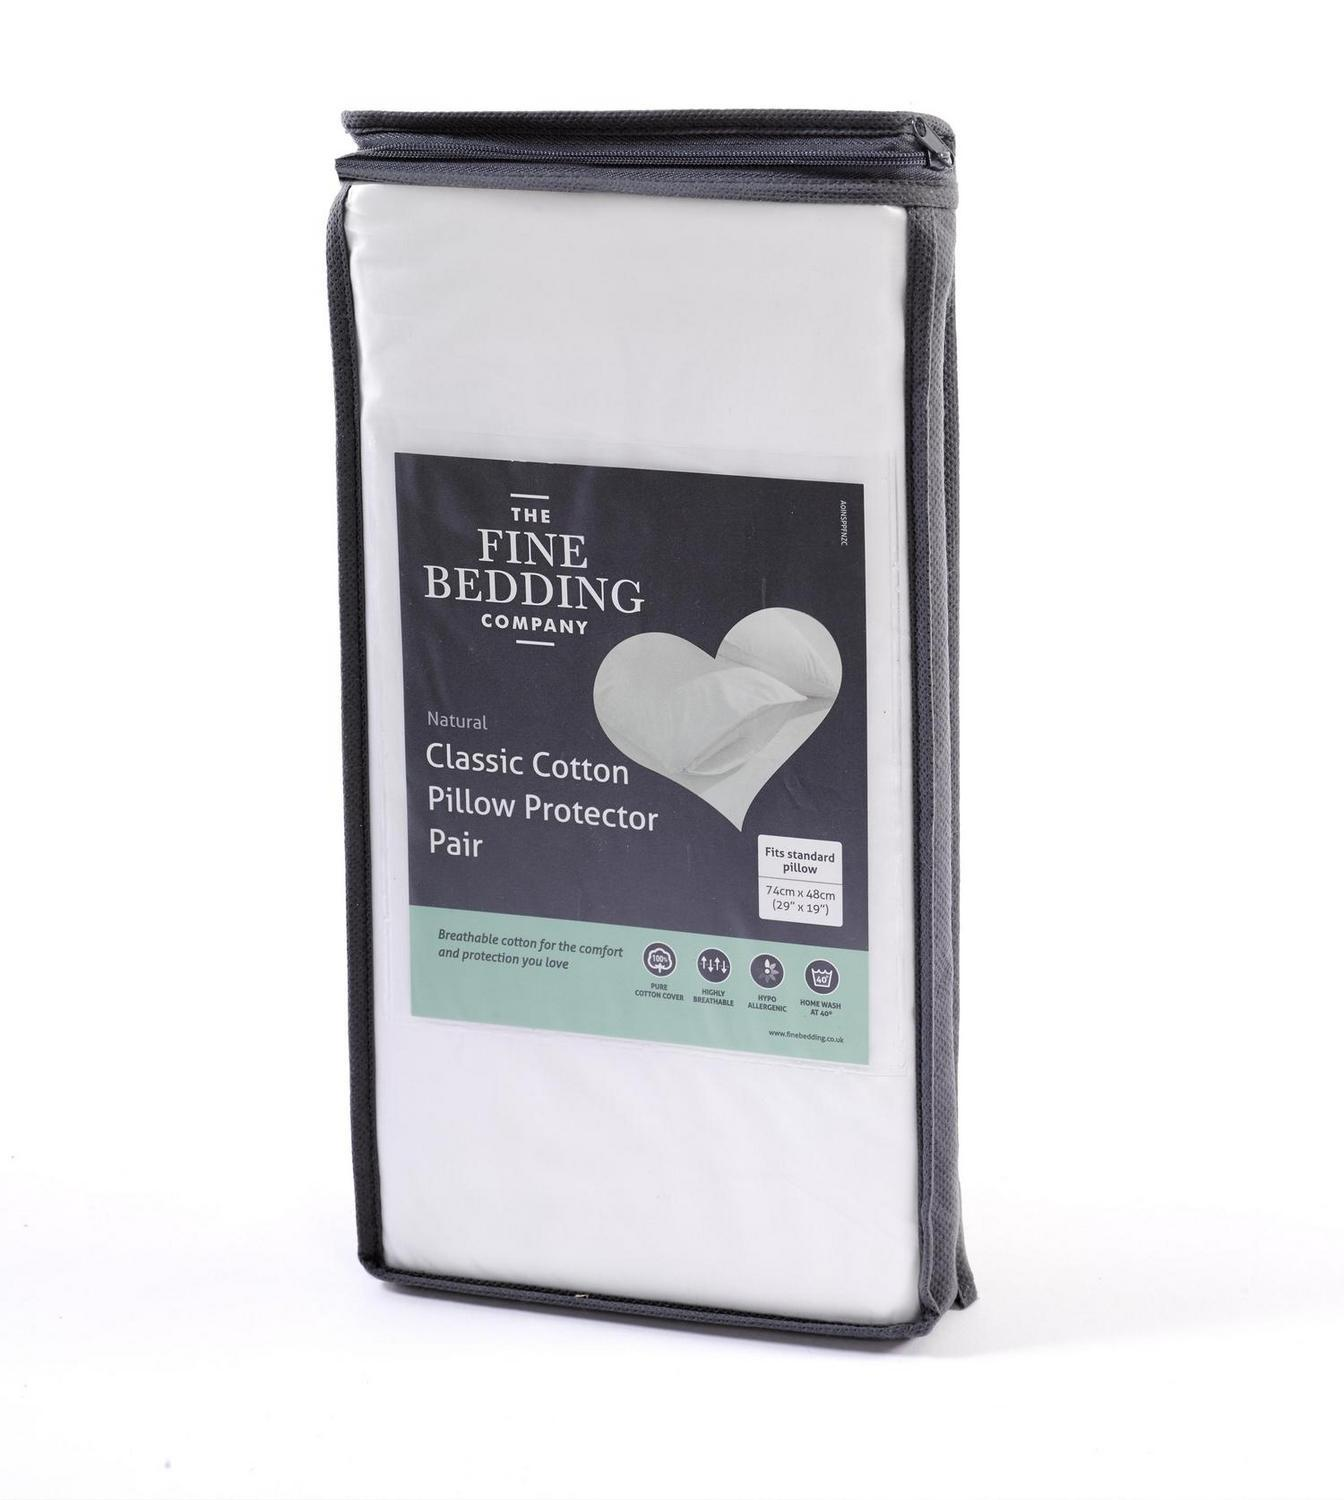 The Fine Bedding Co Classic Cotton Pillow Protector Pair (£12.00)